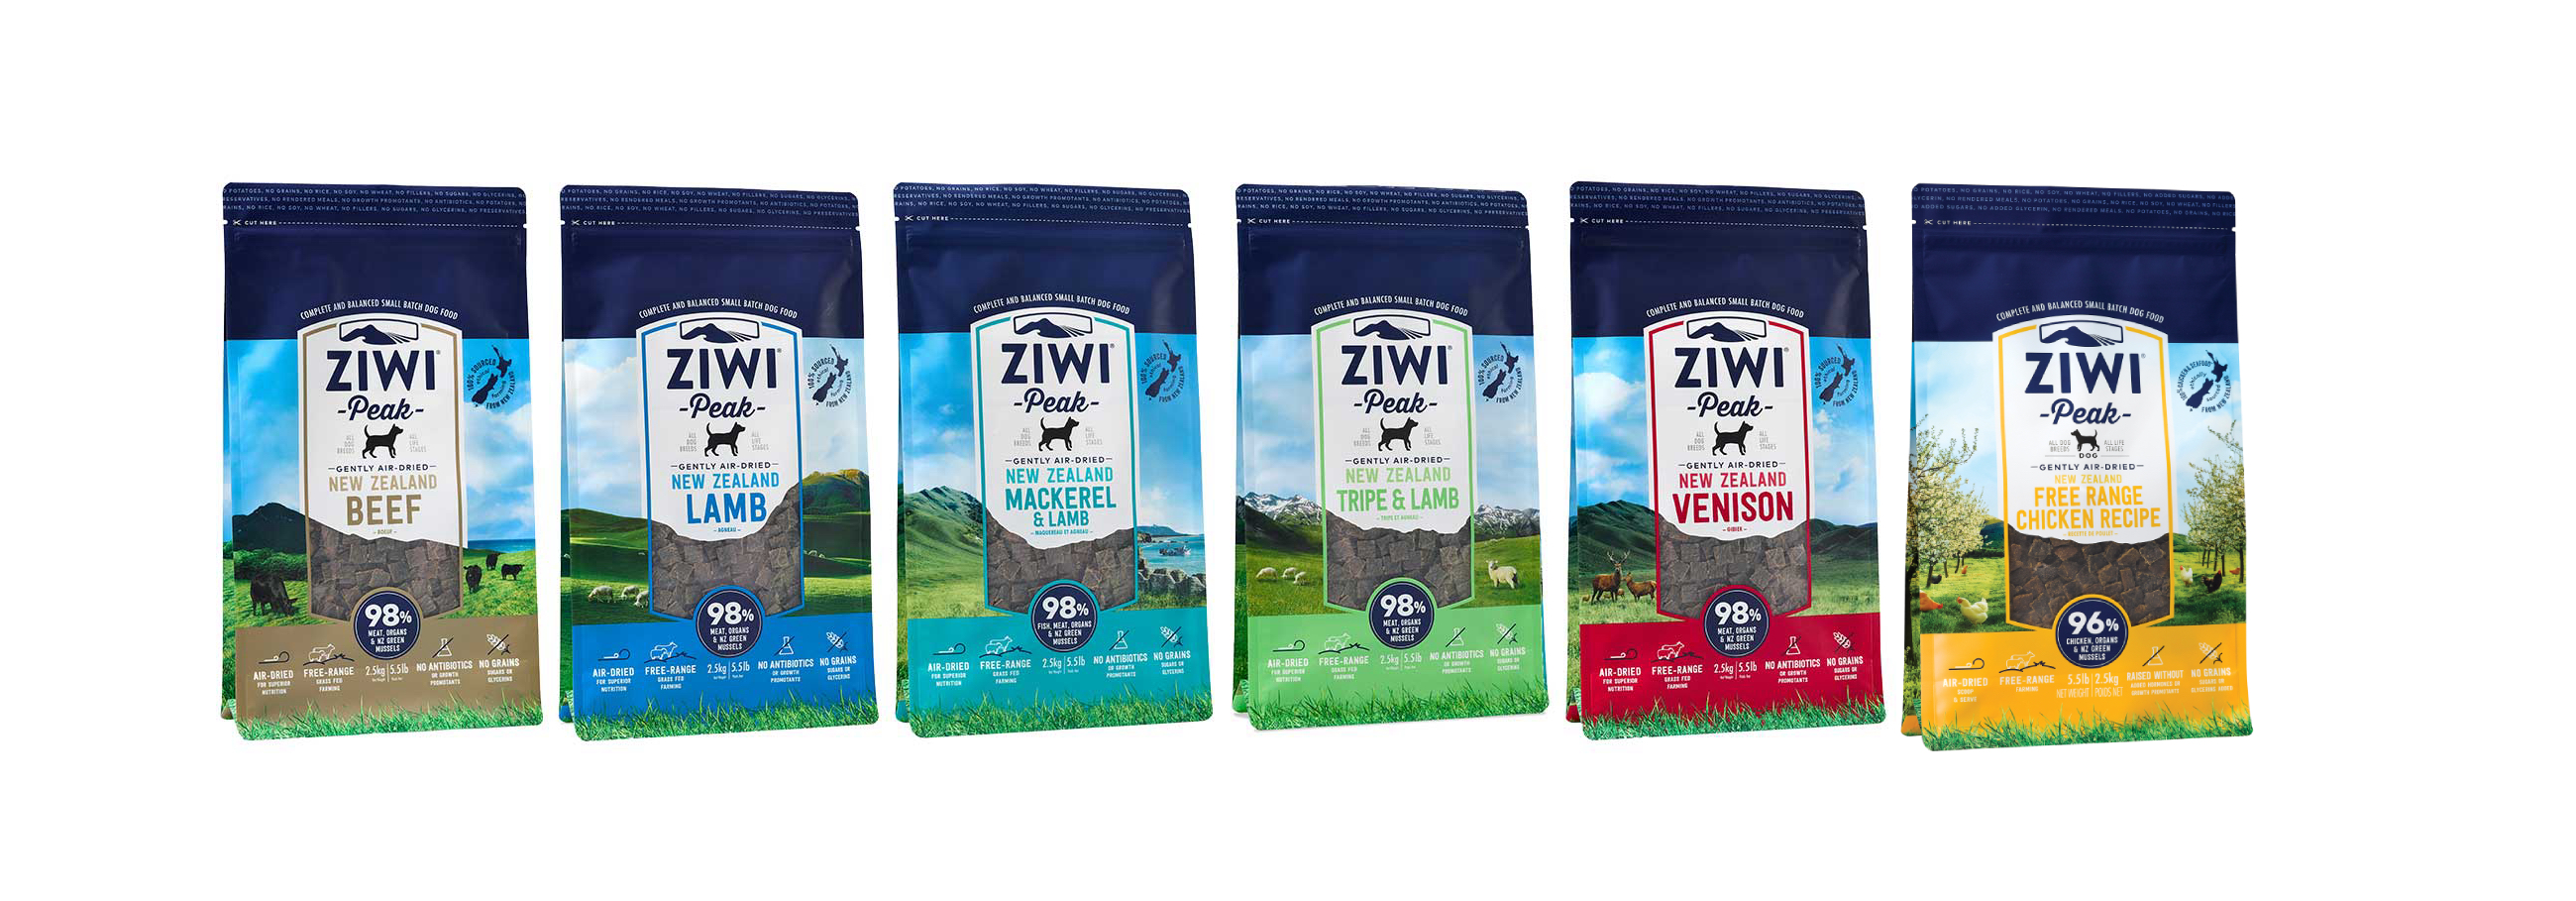 NEW Air-dried Ziwi Peak dog food, Beef, Lamb, Venison, Mackerel & Lamb, Tripe & Lamb